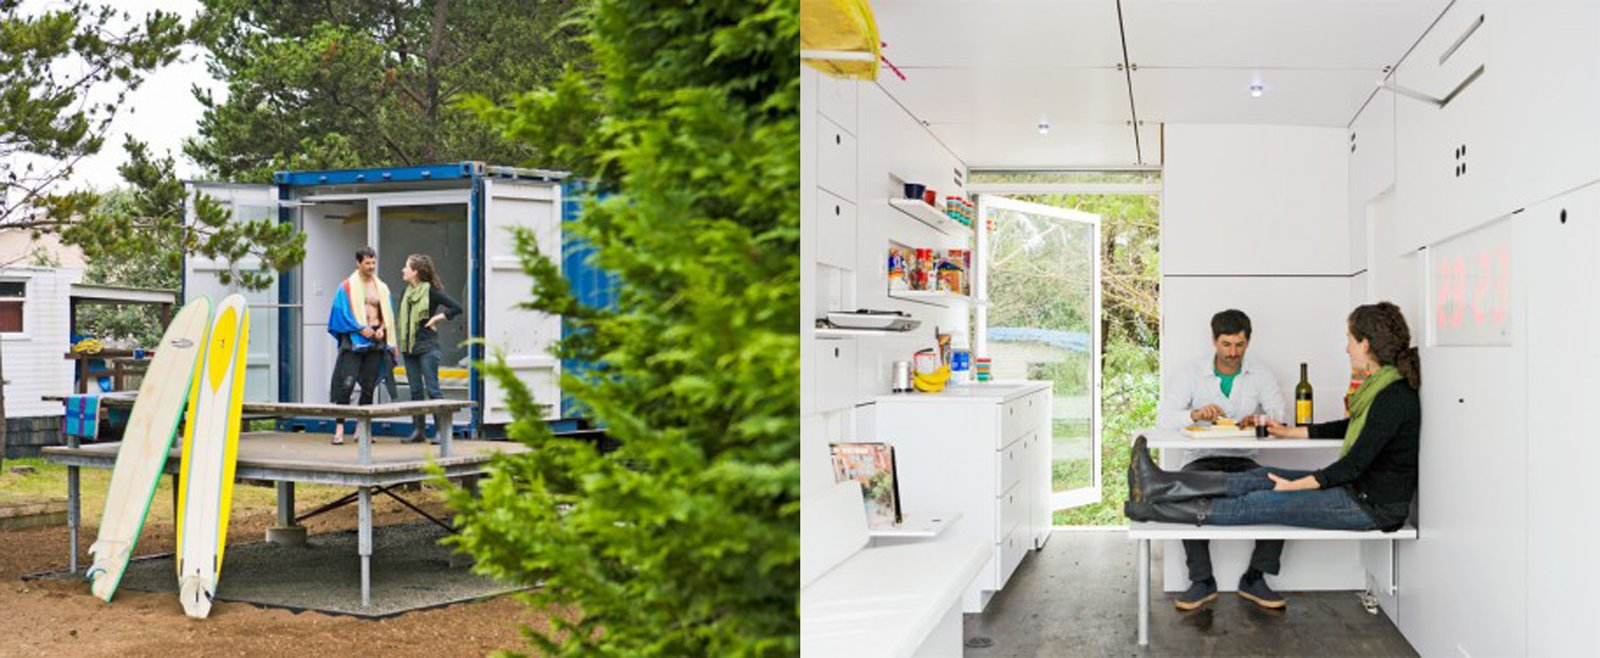 Hartman Kable designed the Surfshack to include loads of built-in, fold-down furniture to keep the 160-square-foot container clutter free. Check out this video tour of the project and watch extra closely at about 49 seconds in to see a Dwell cameo.  Shipping Containers by Dwell